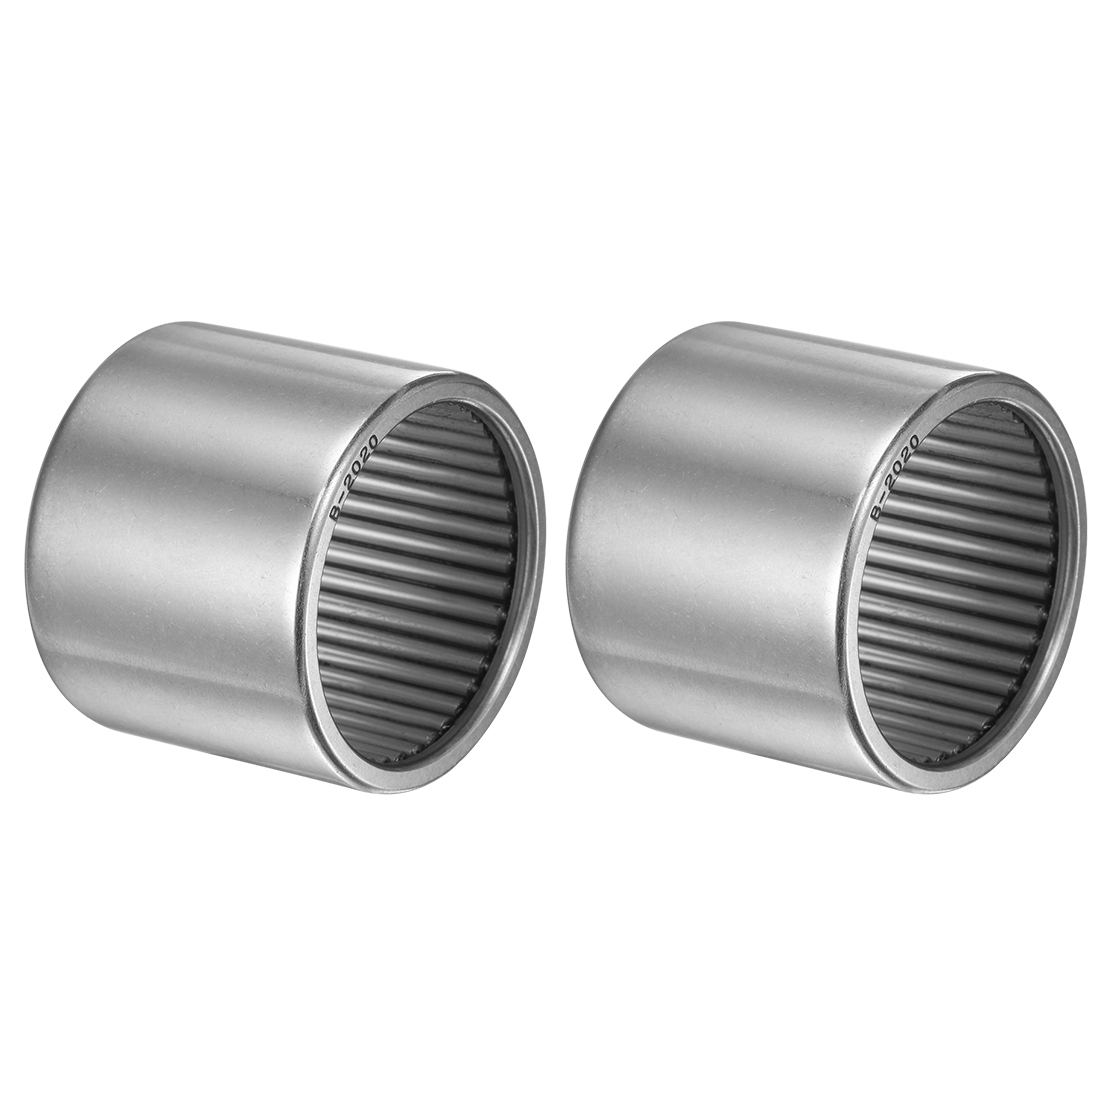 """B2020 Needle Roller Bearings 1-1/4x1-1/2x1-1/4"""" Full Complement Drawn Cup 2pcs"""